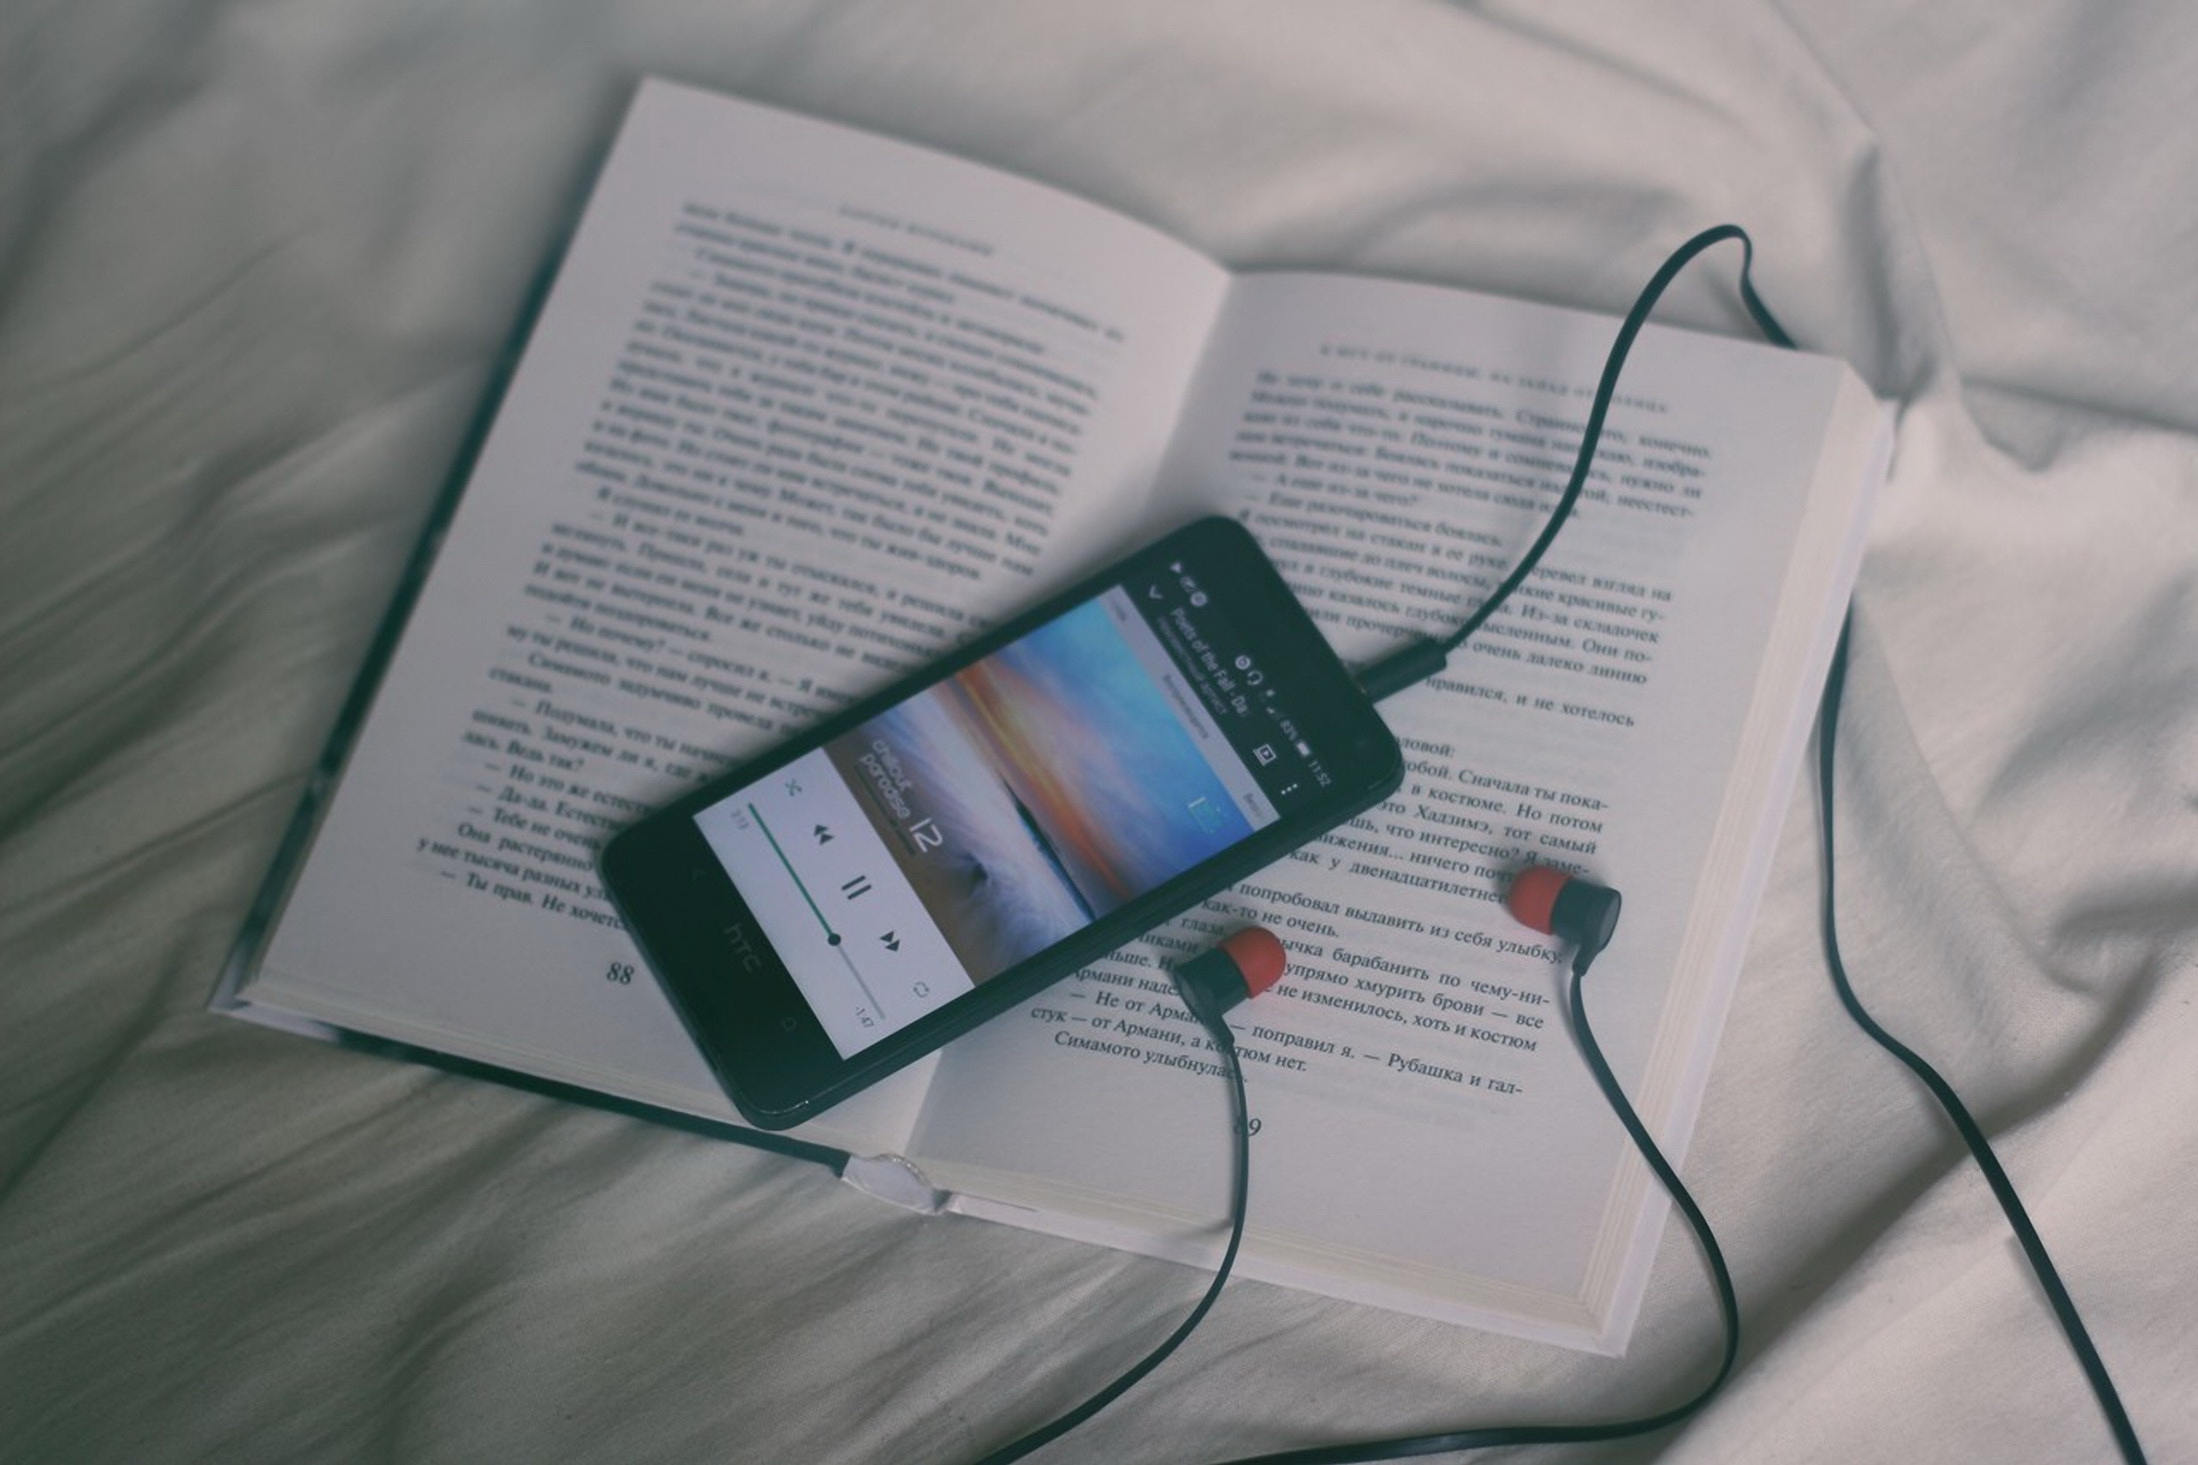 book and ipod device